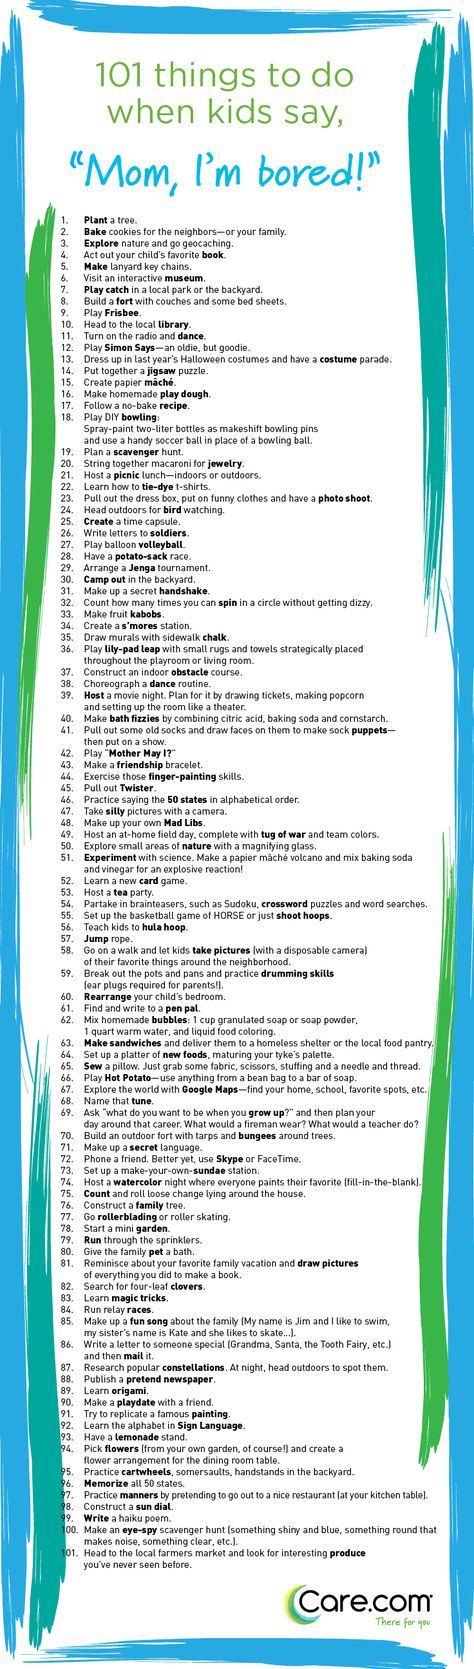 101 Things to Do When Kids Say 'I'm Bored'